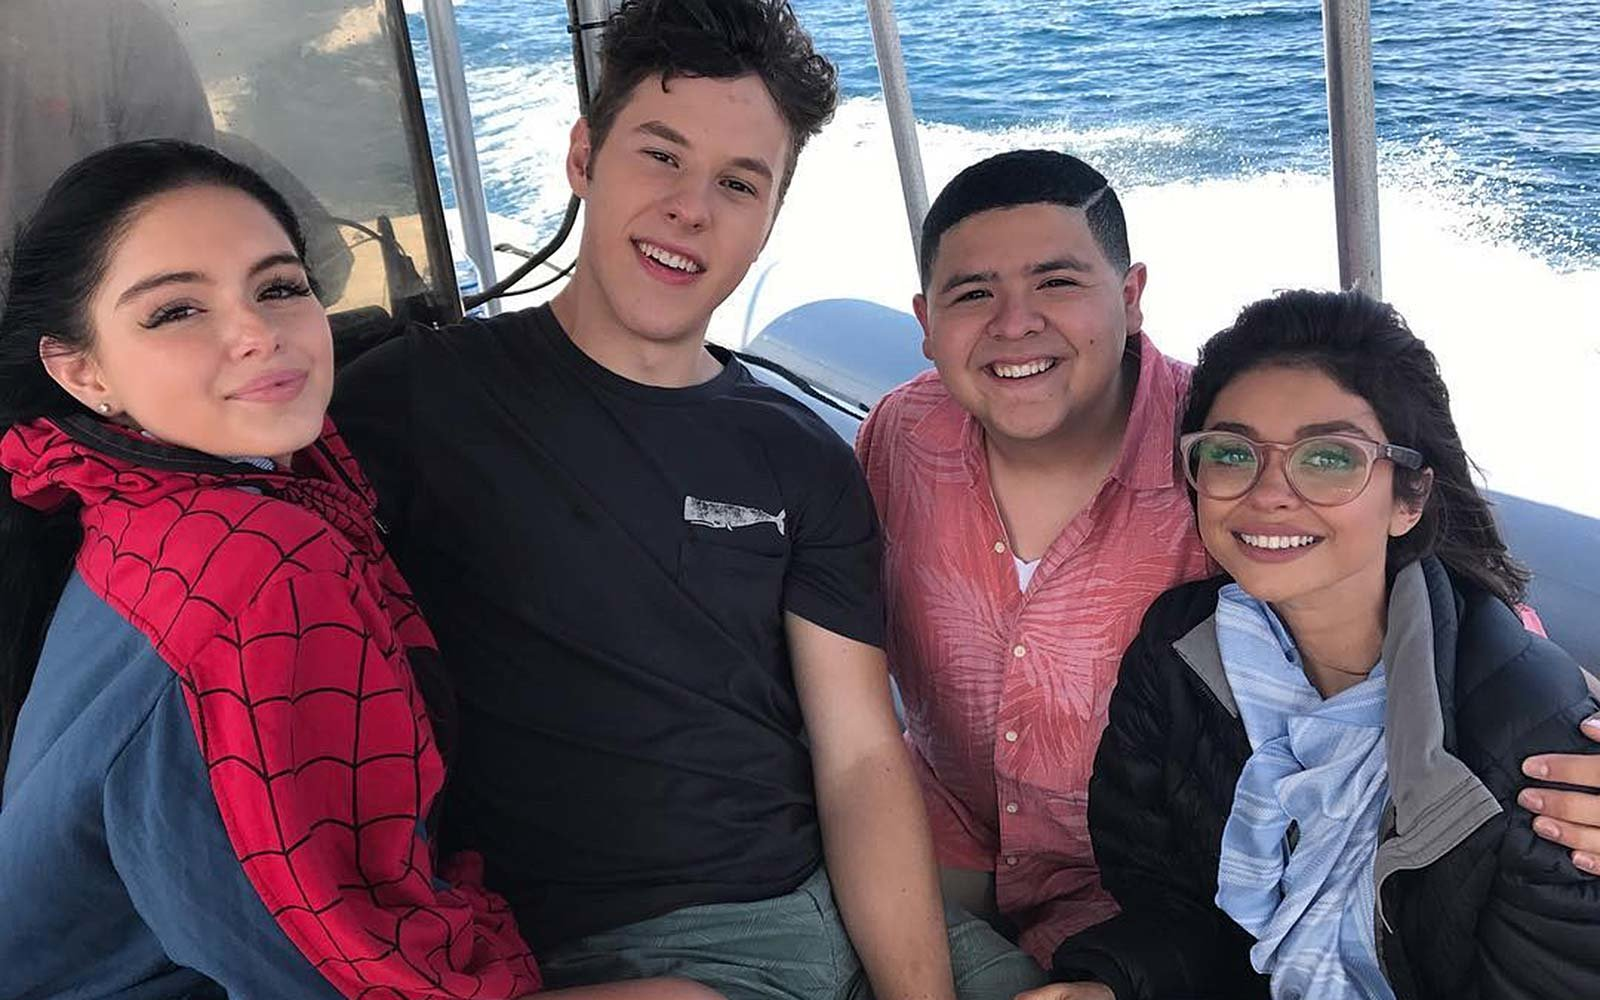 Modern Family TV cast filming Lake Tahoe vacation